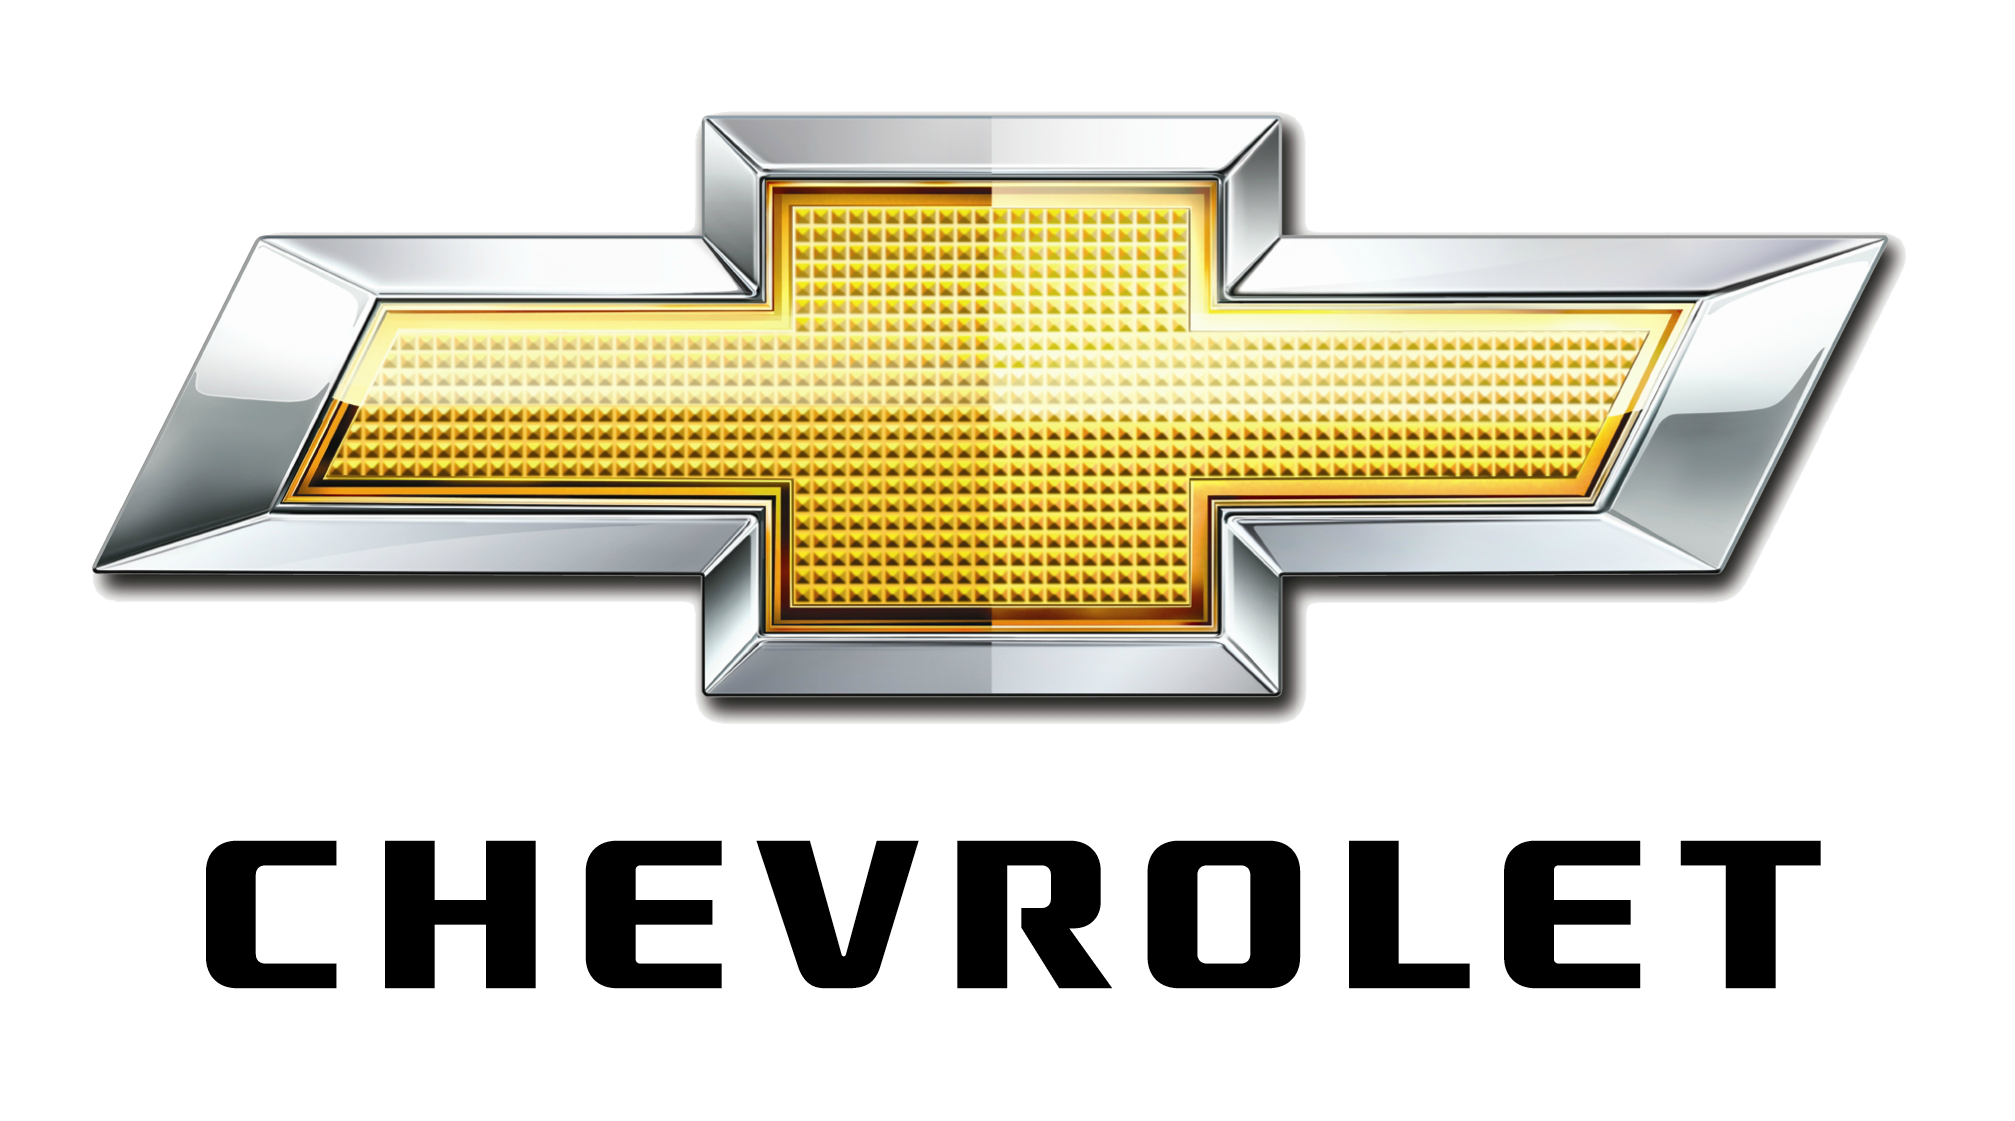 Chevy bel air emblem png. Sweepstakes and instant win